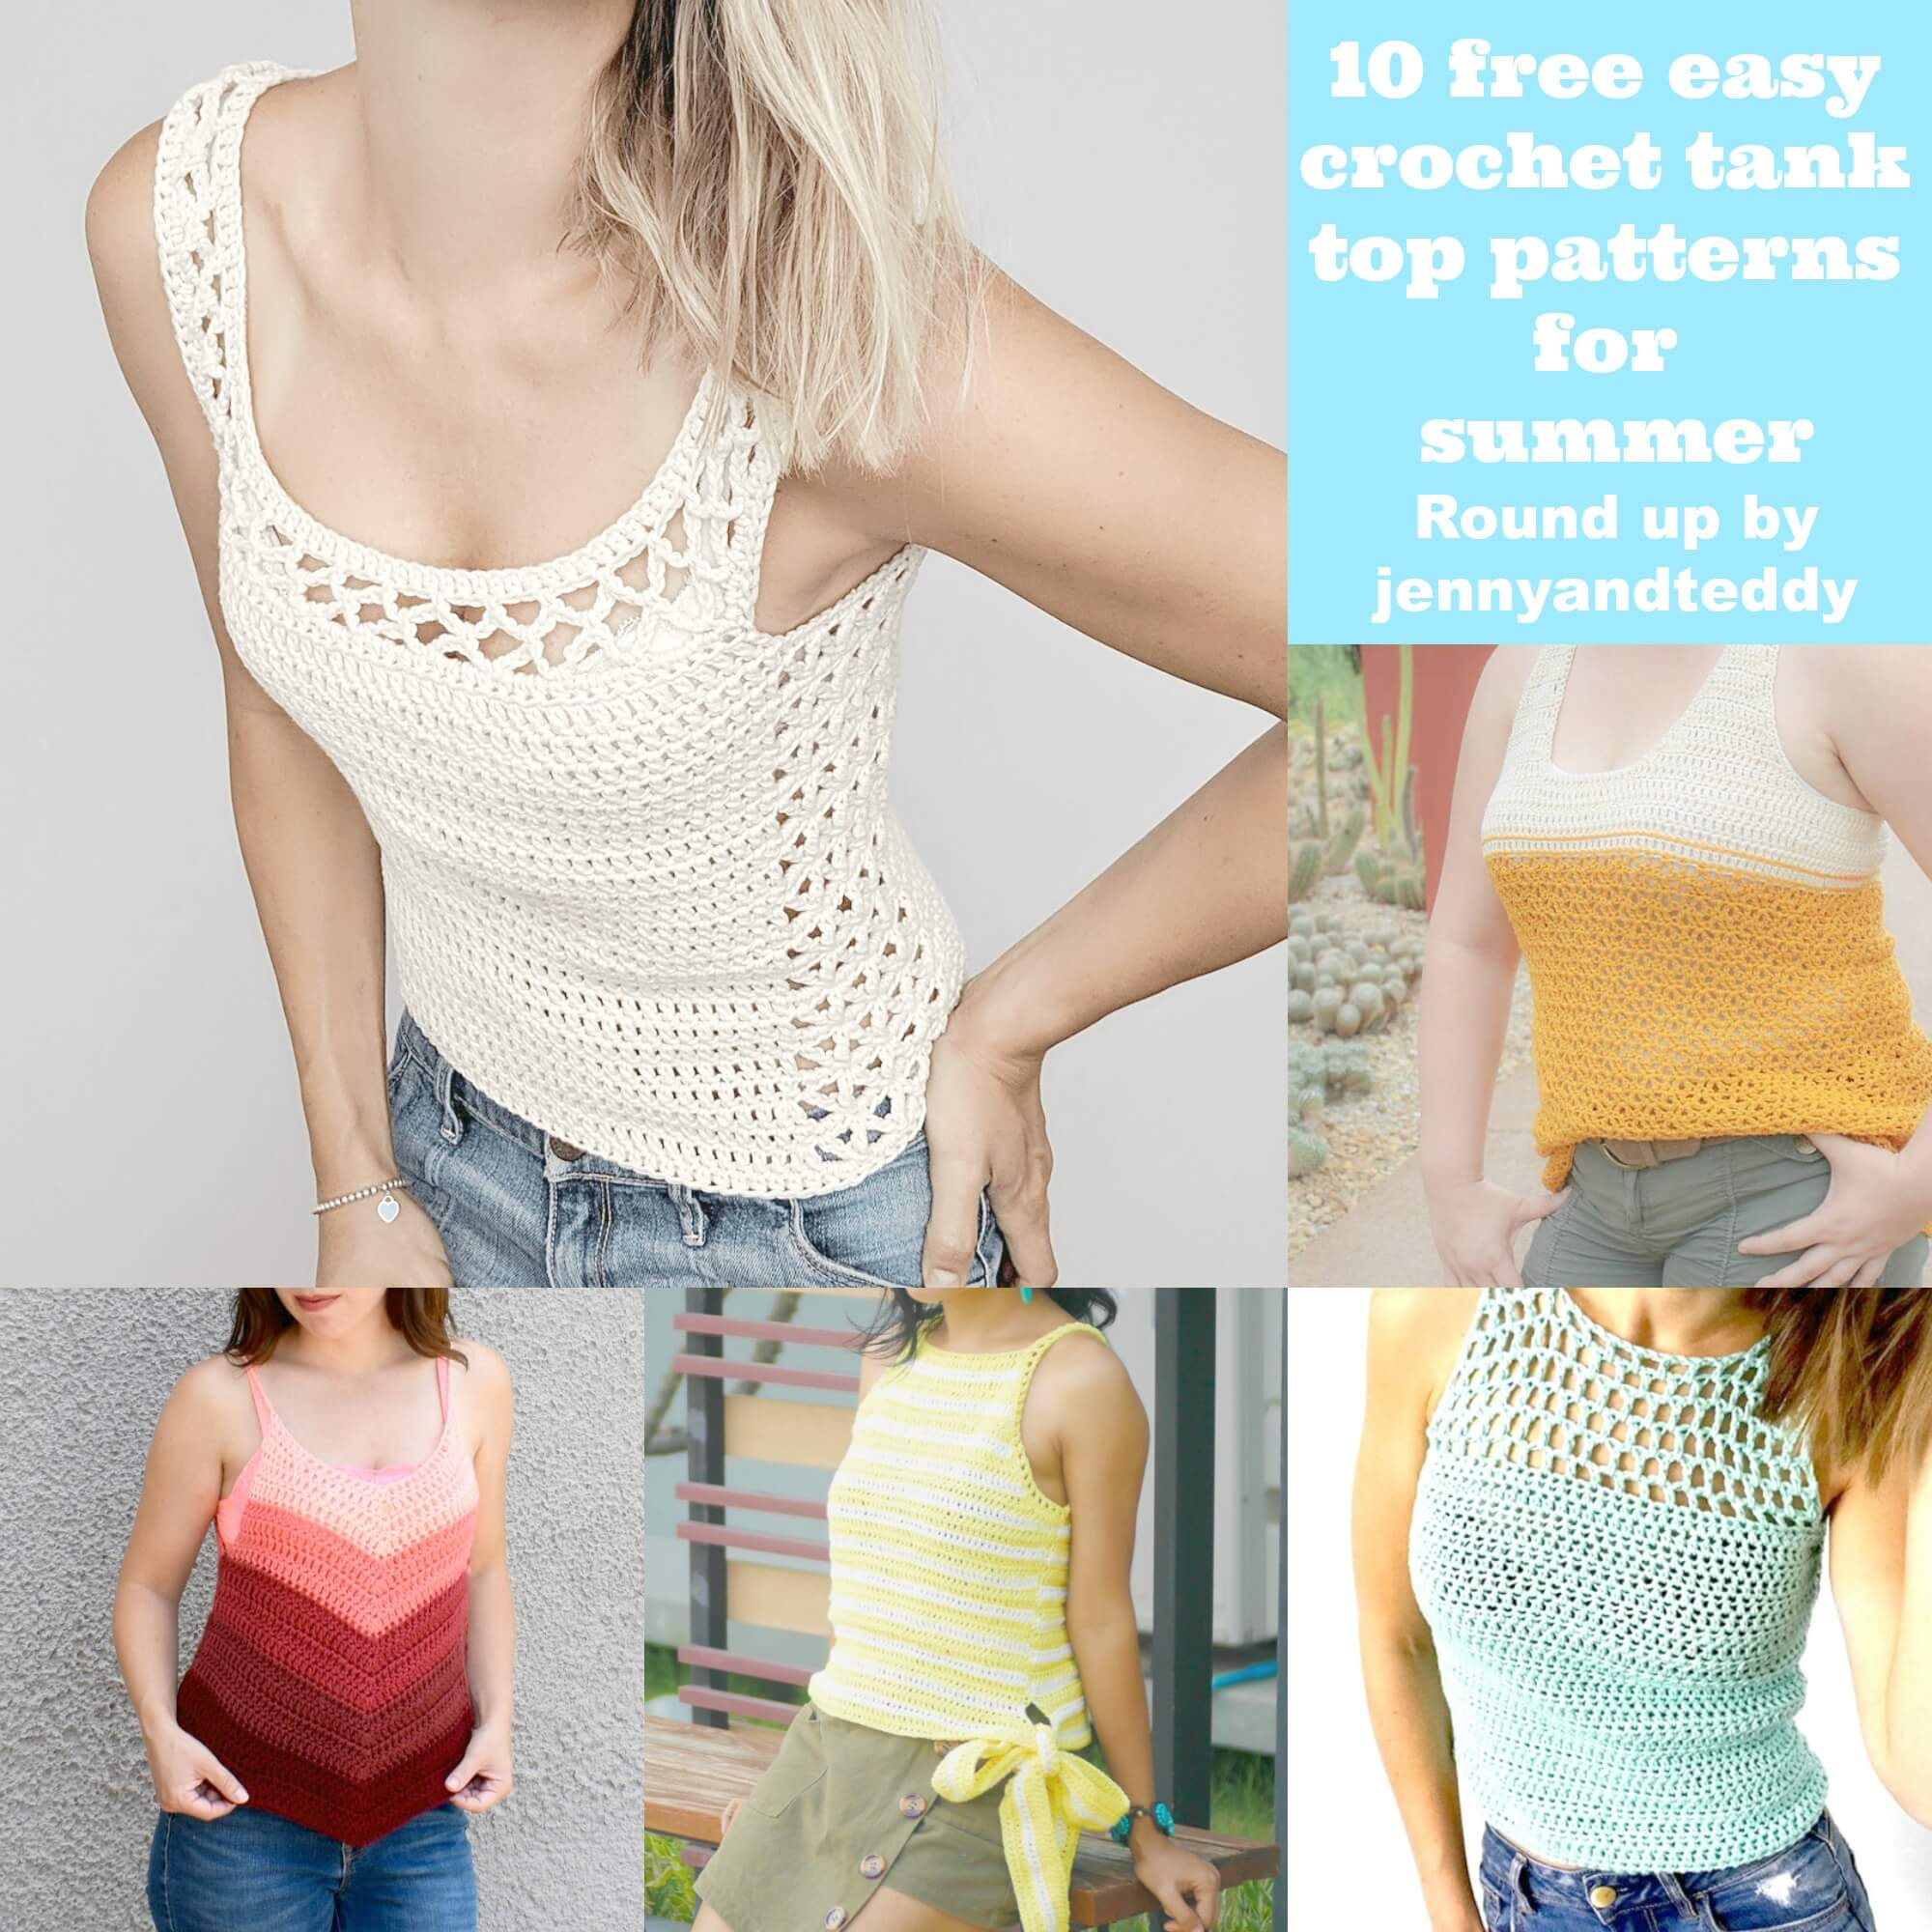 10 free easy crochet tank top for summer pattern for beginner round up